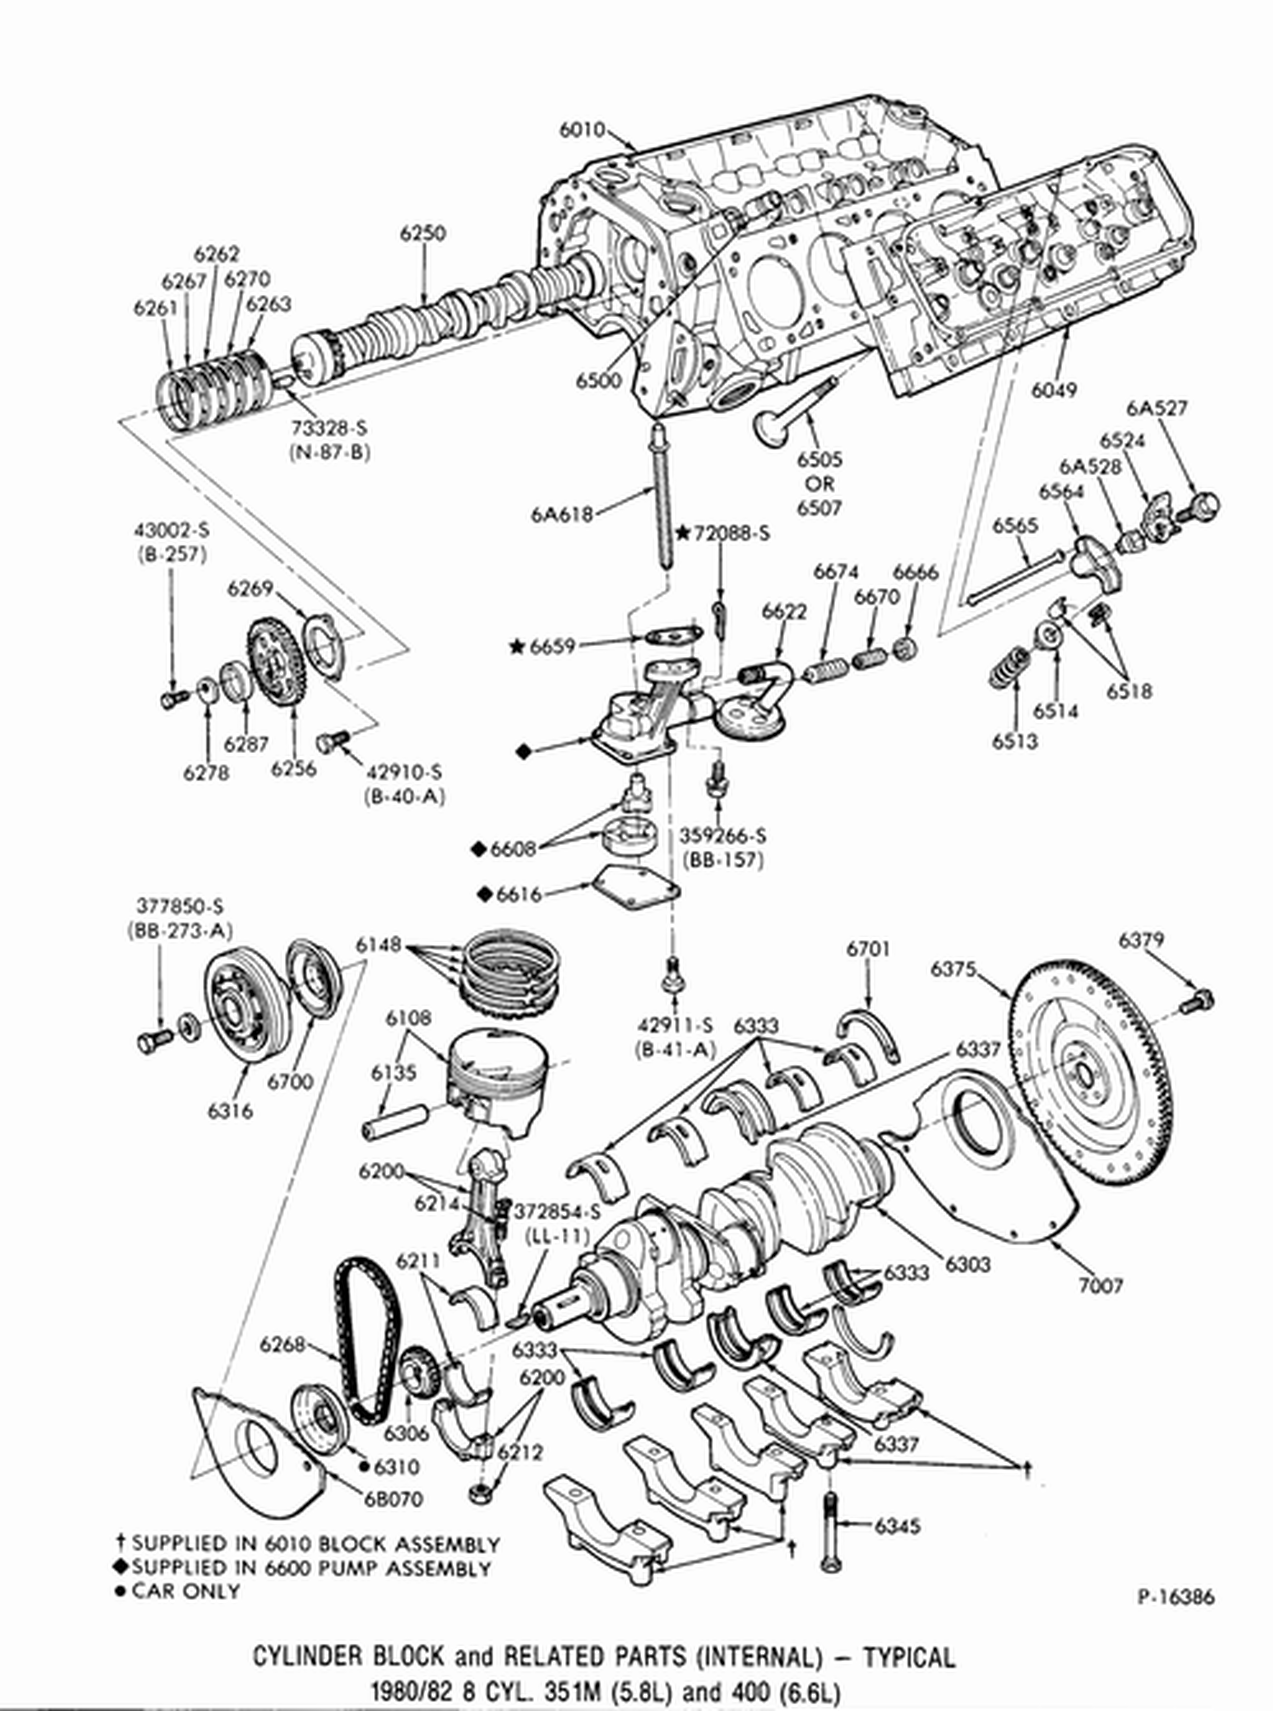 1978 ford 400 engine diagram images gallery